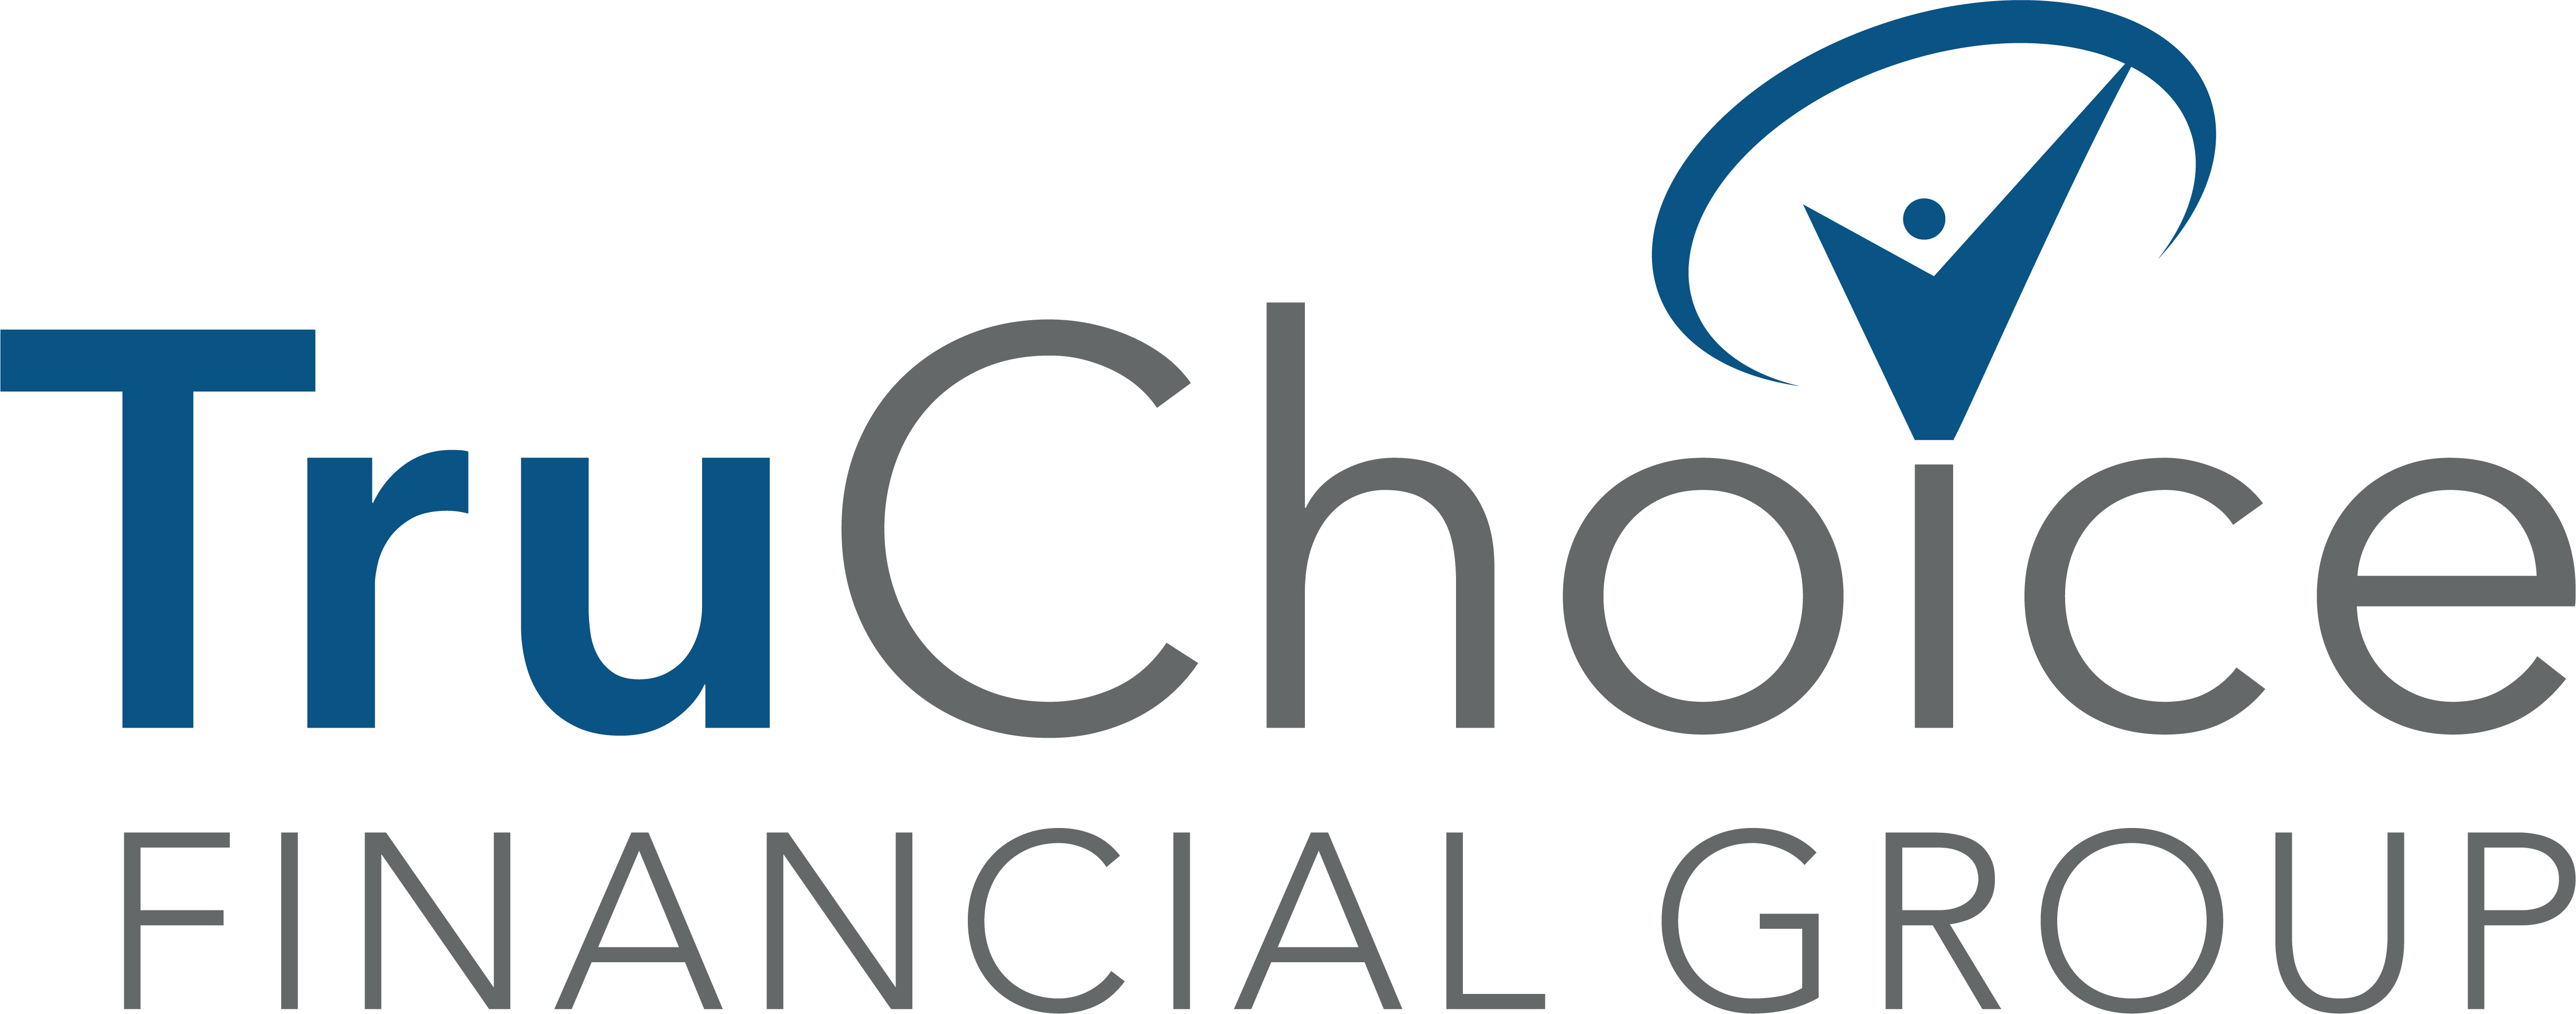 TruChoice Financial Group Becomes One